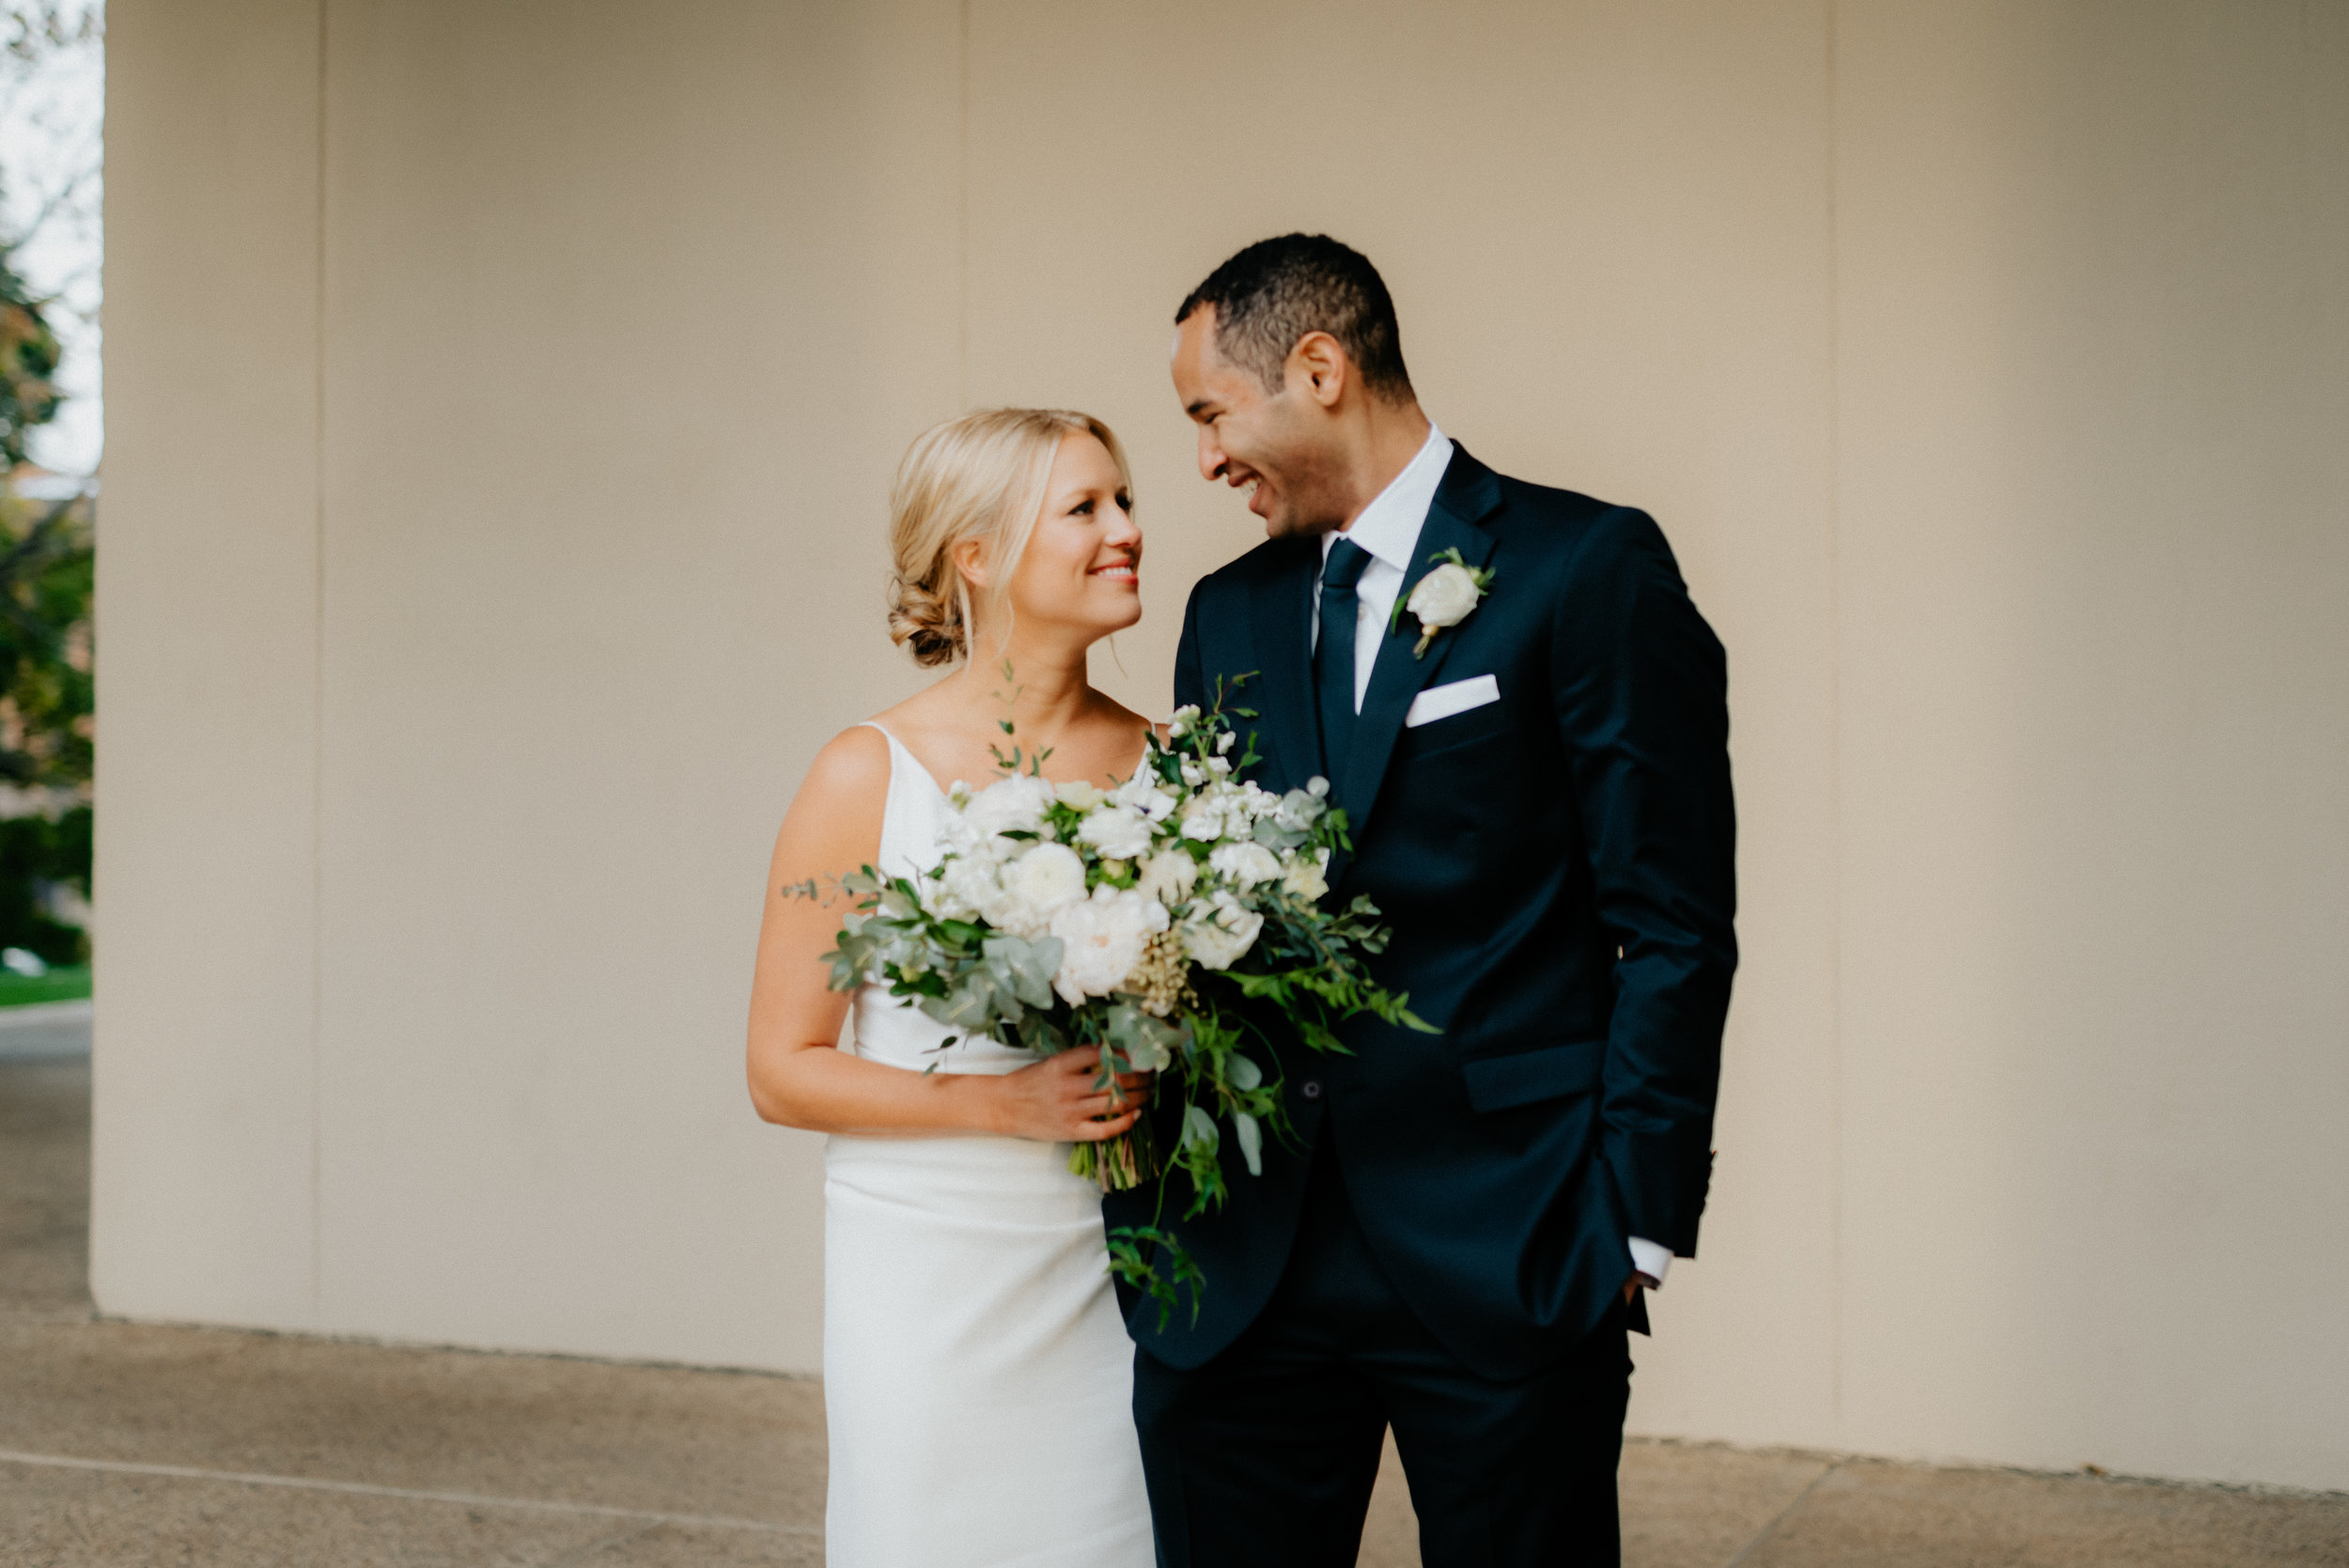 Olde Bar Wedding in Old City Philadelphia with Elegant Neutral Palette with Wedding Photographer Viva Love Photo and Heart & Dash